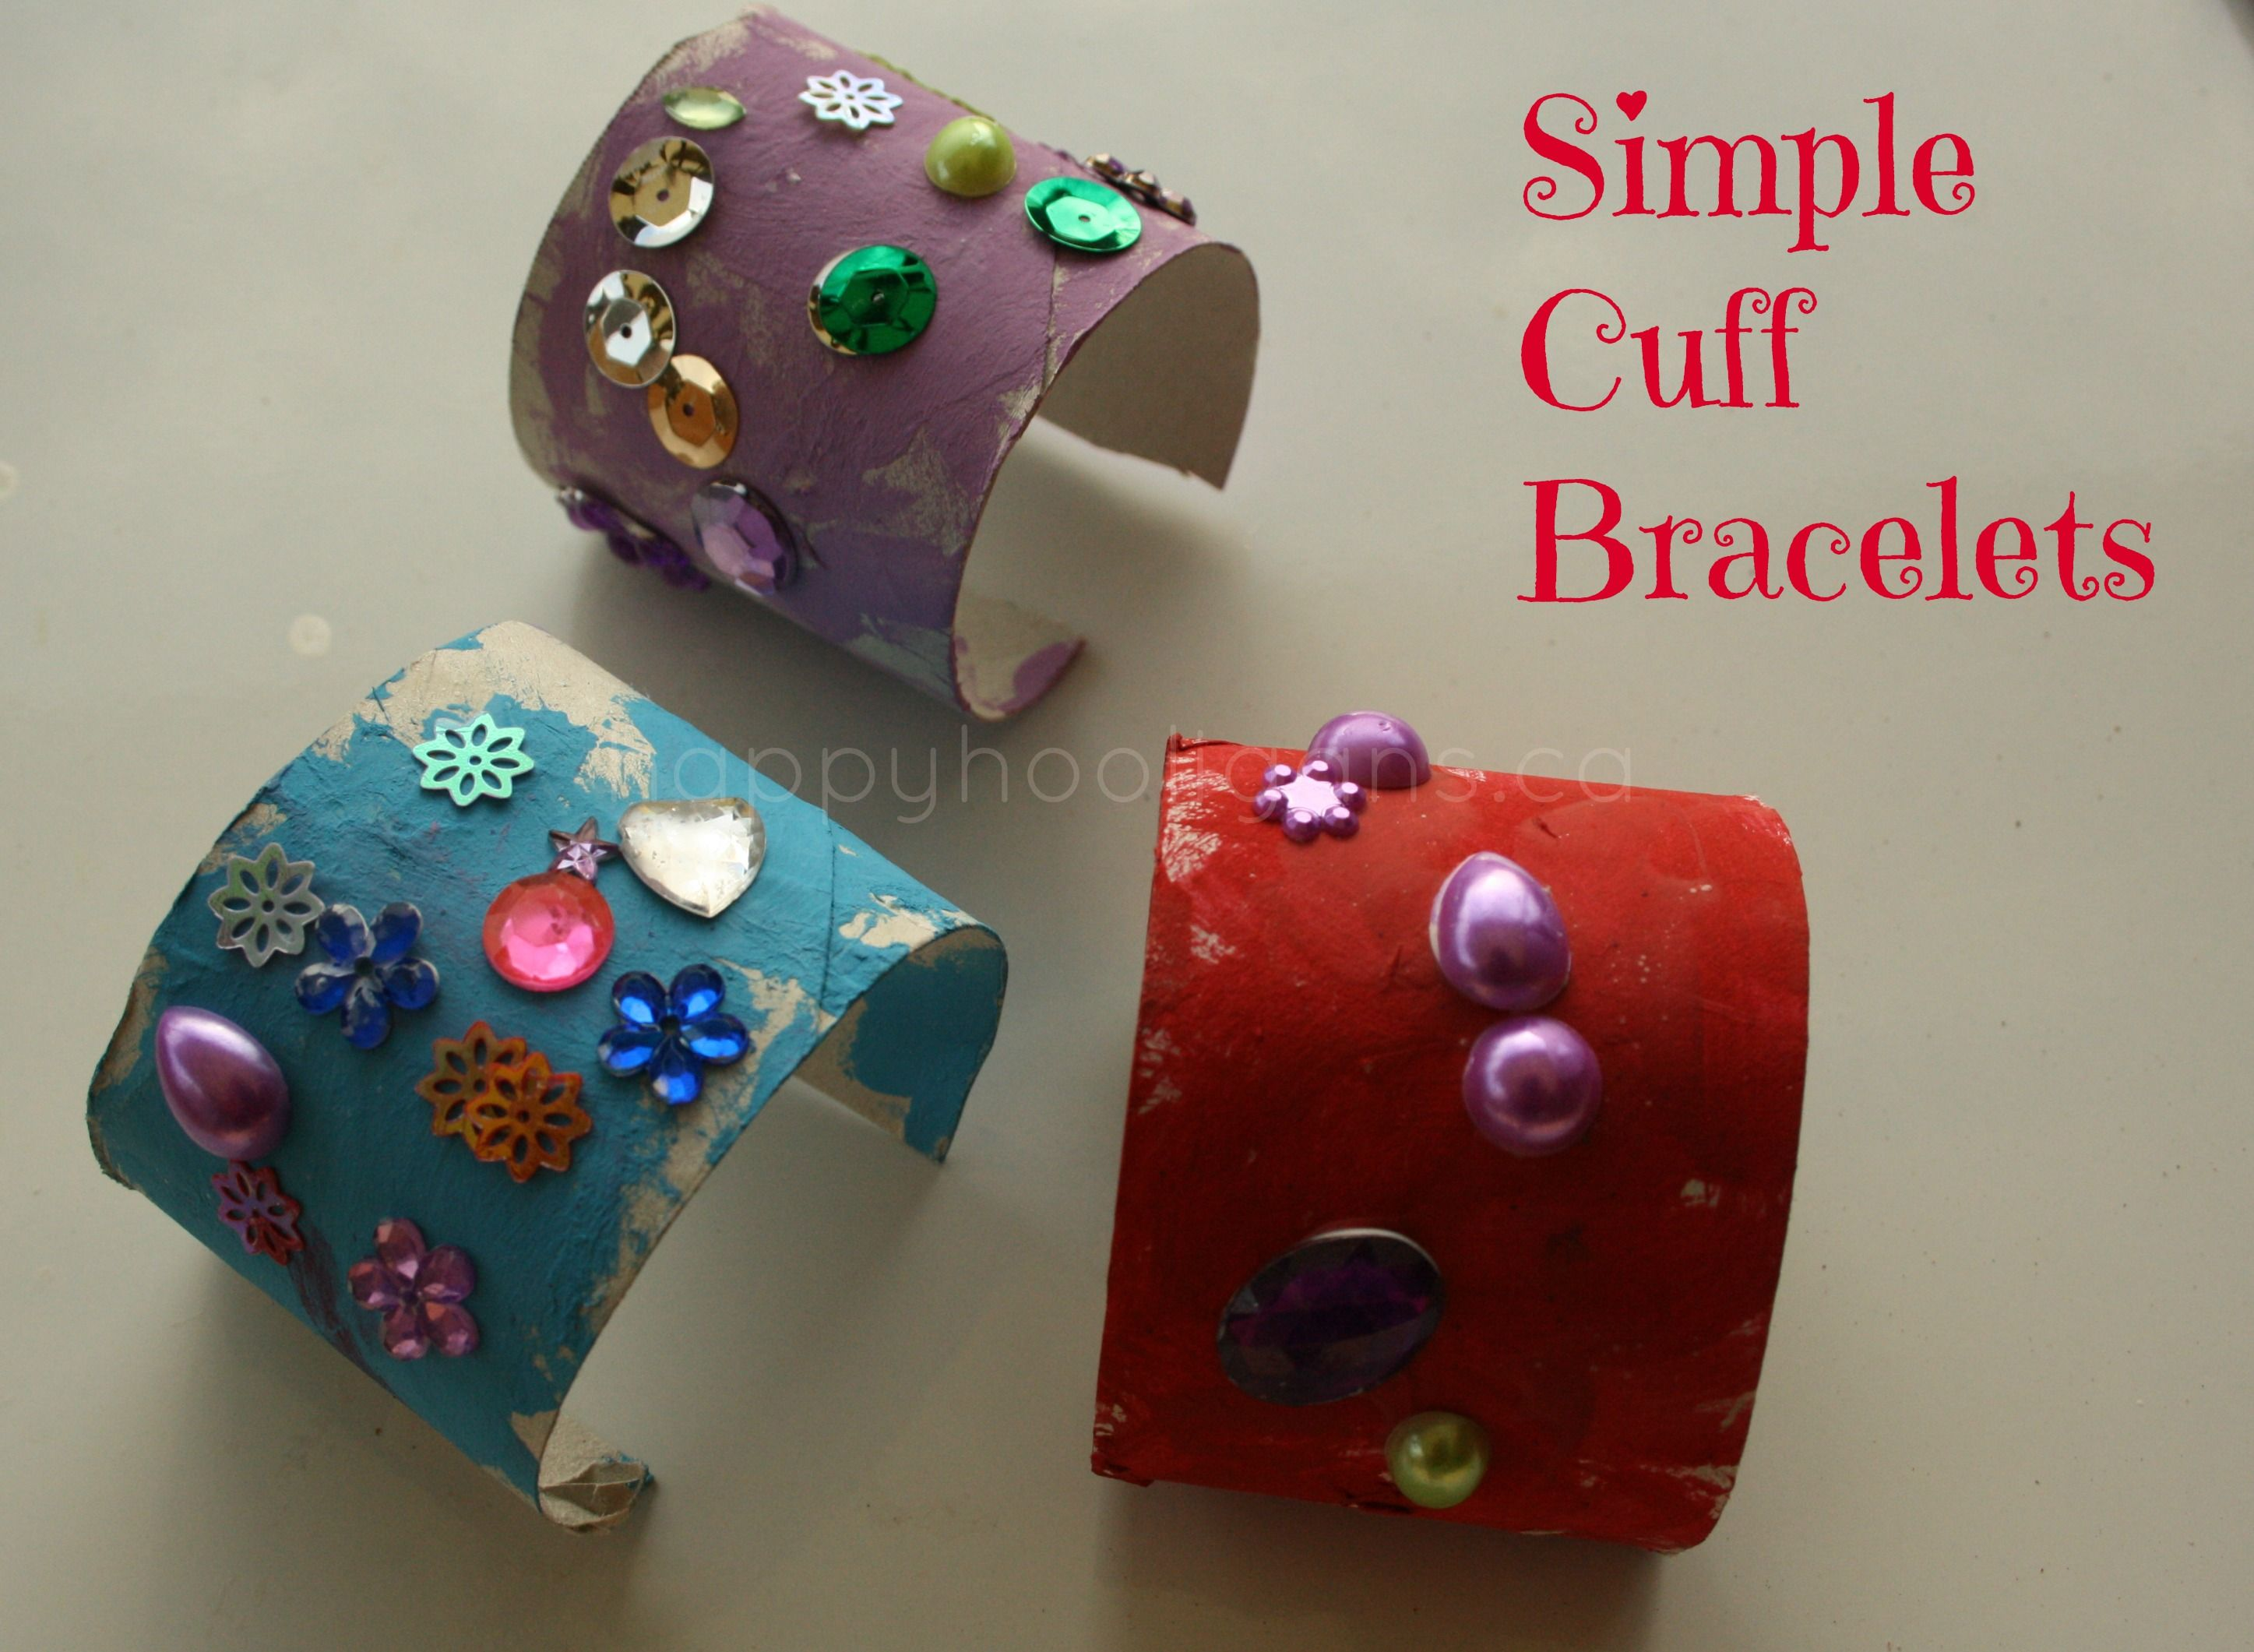 48+ Toilet paper crafts for kids ideas